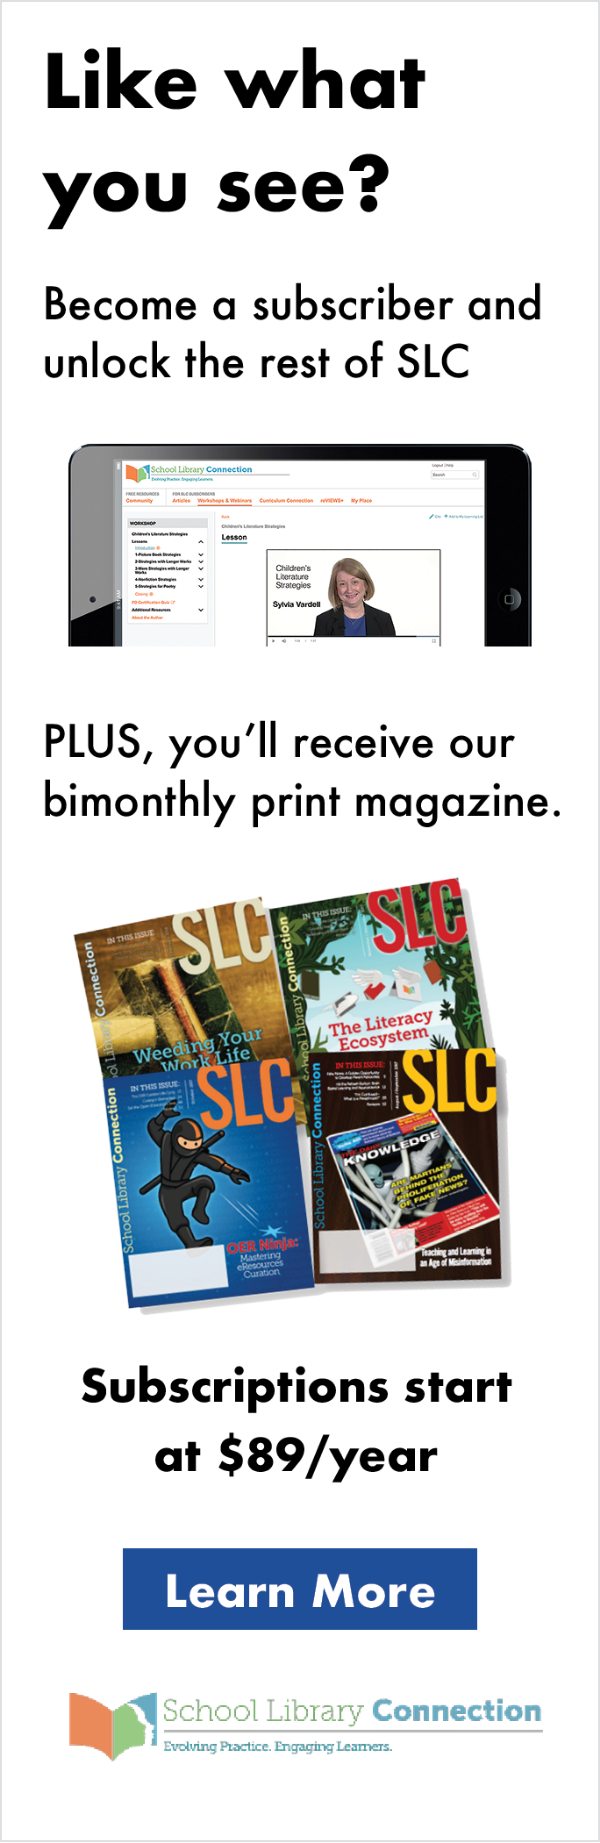 Learn More about SLC